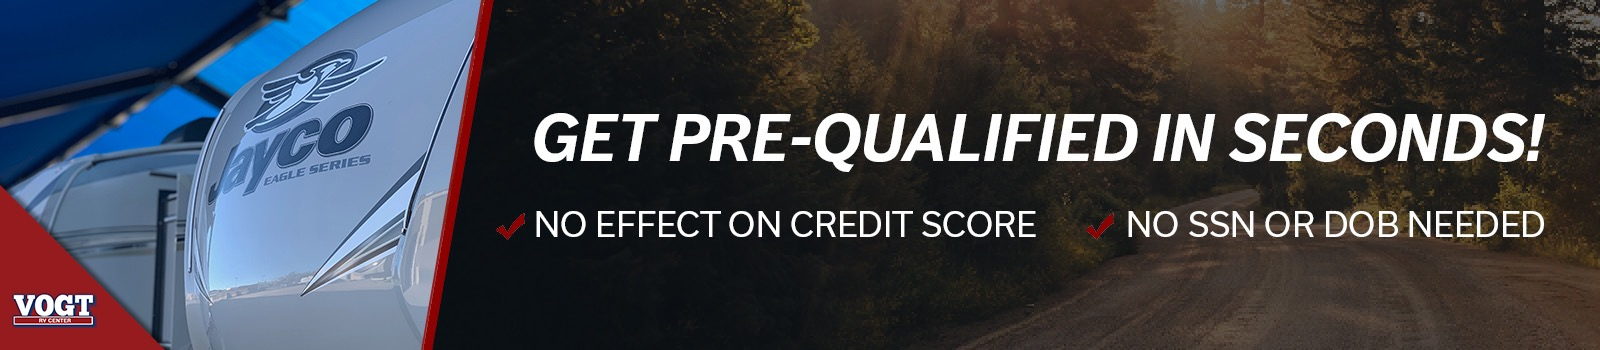 Get Pre-Qualified!